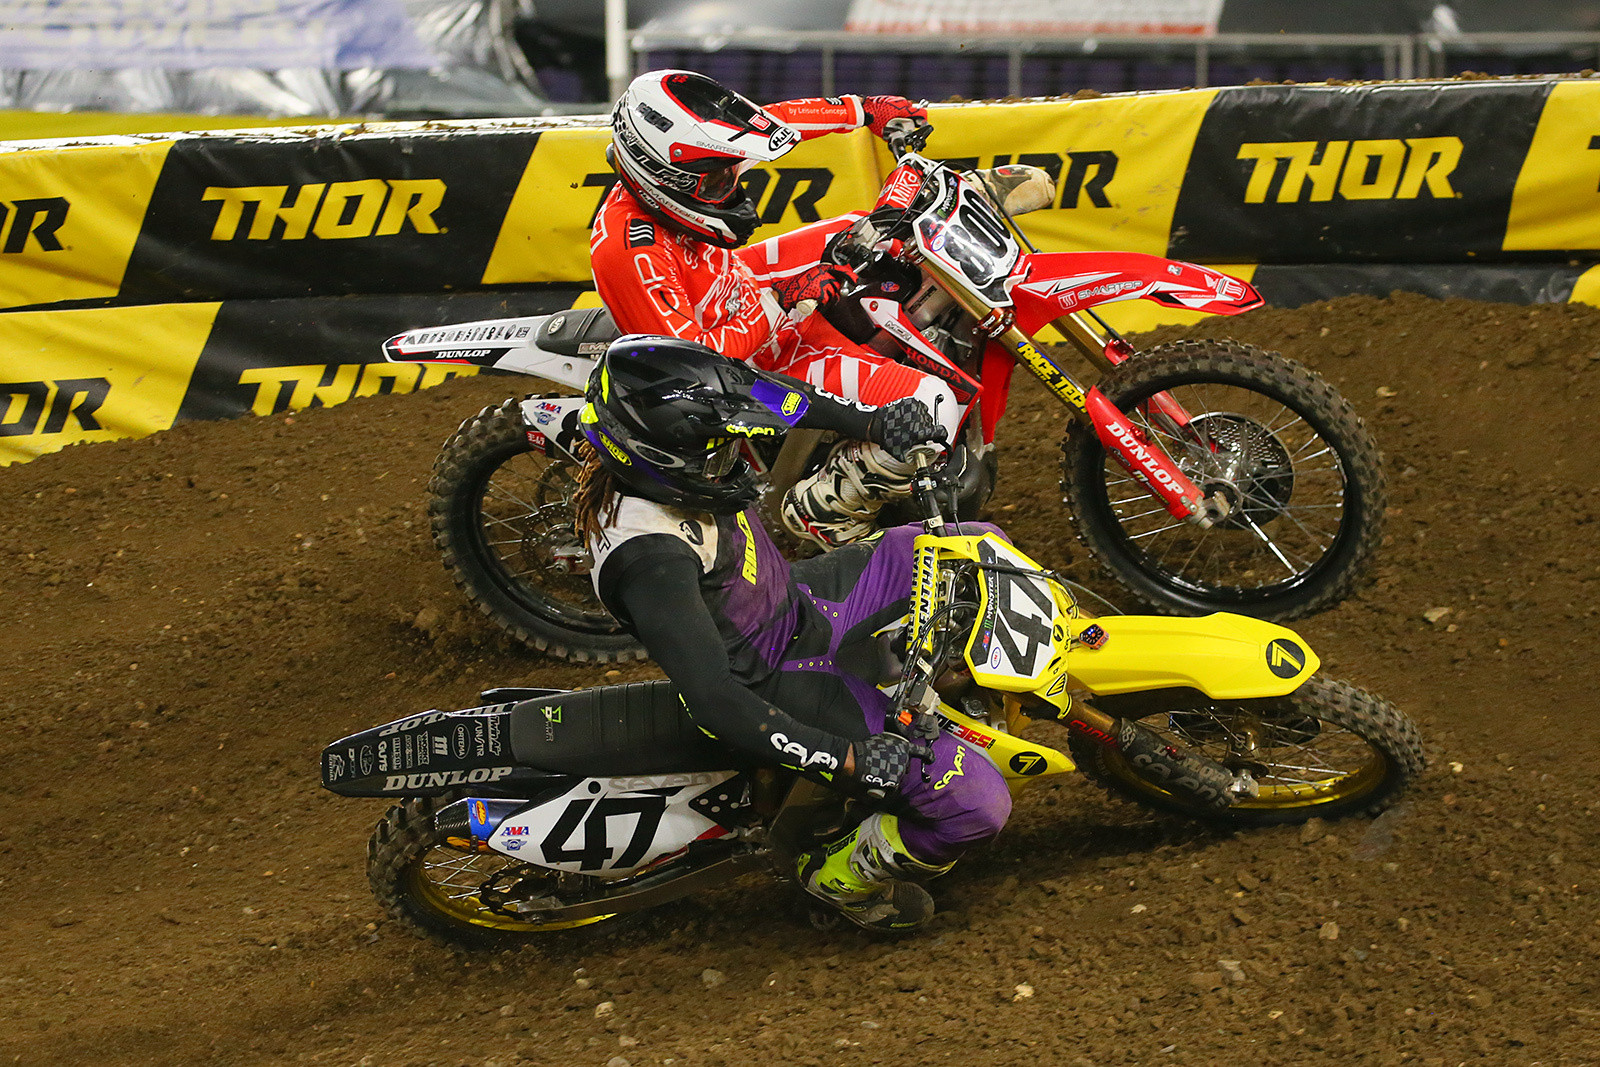 Malcolm Stewart and Mike Alessi - Photo Blast: Minneapolis - Motocross Pictures - Vital MX